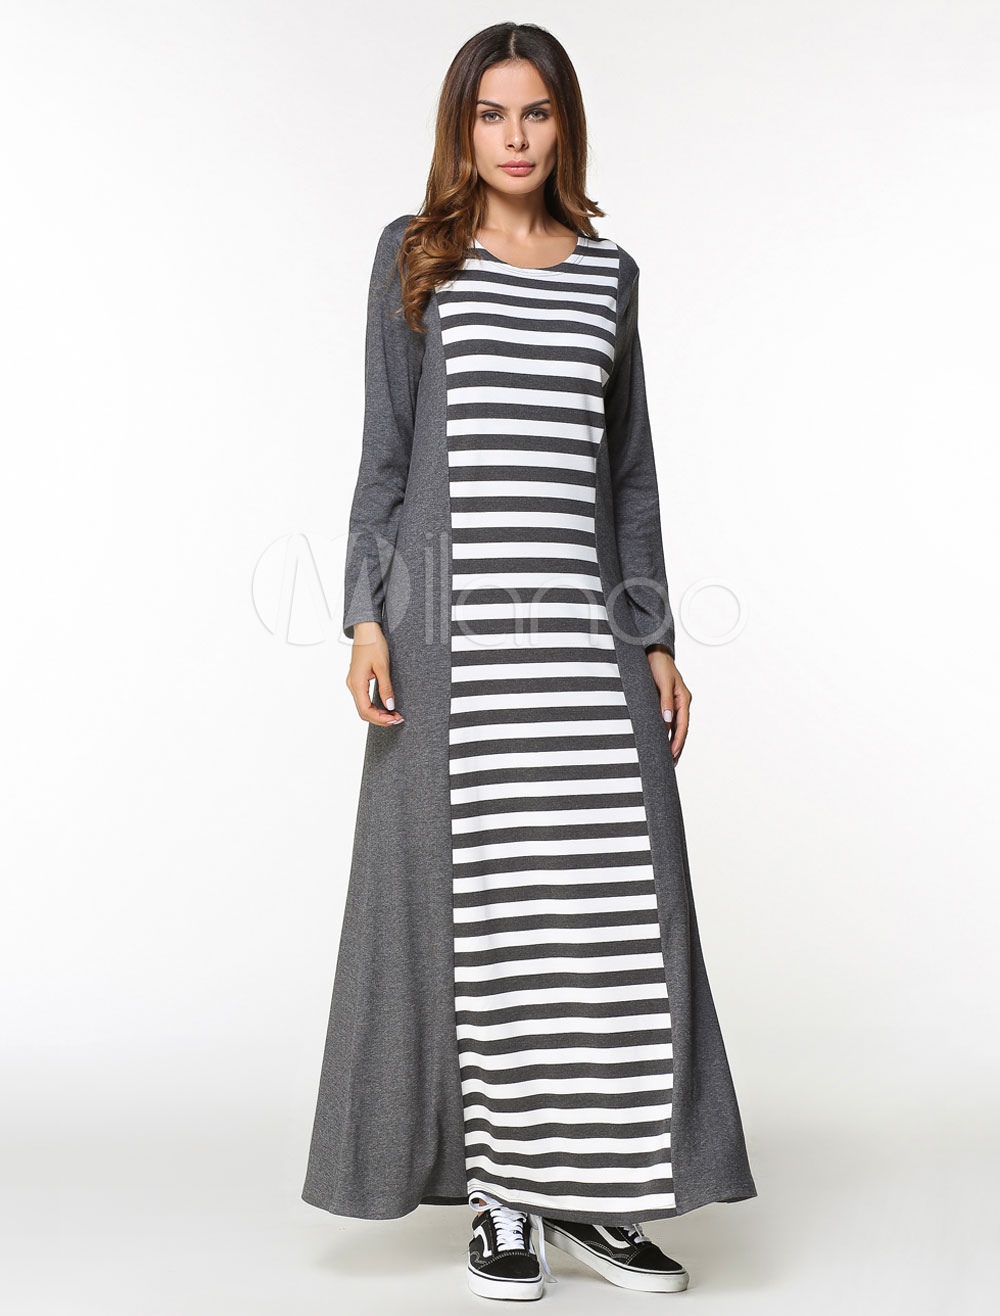 3ae0a0053535 Maxi Kaftan Dress Women Stripe Long Sleeve Oversized Tunic Dress ...